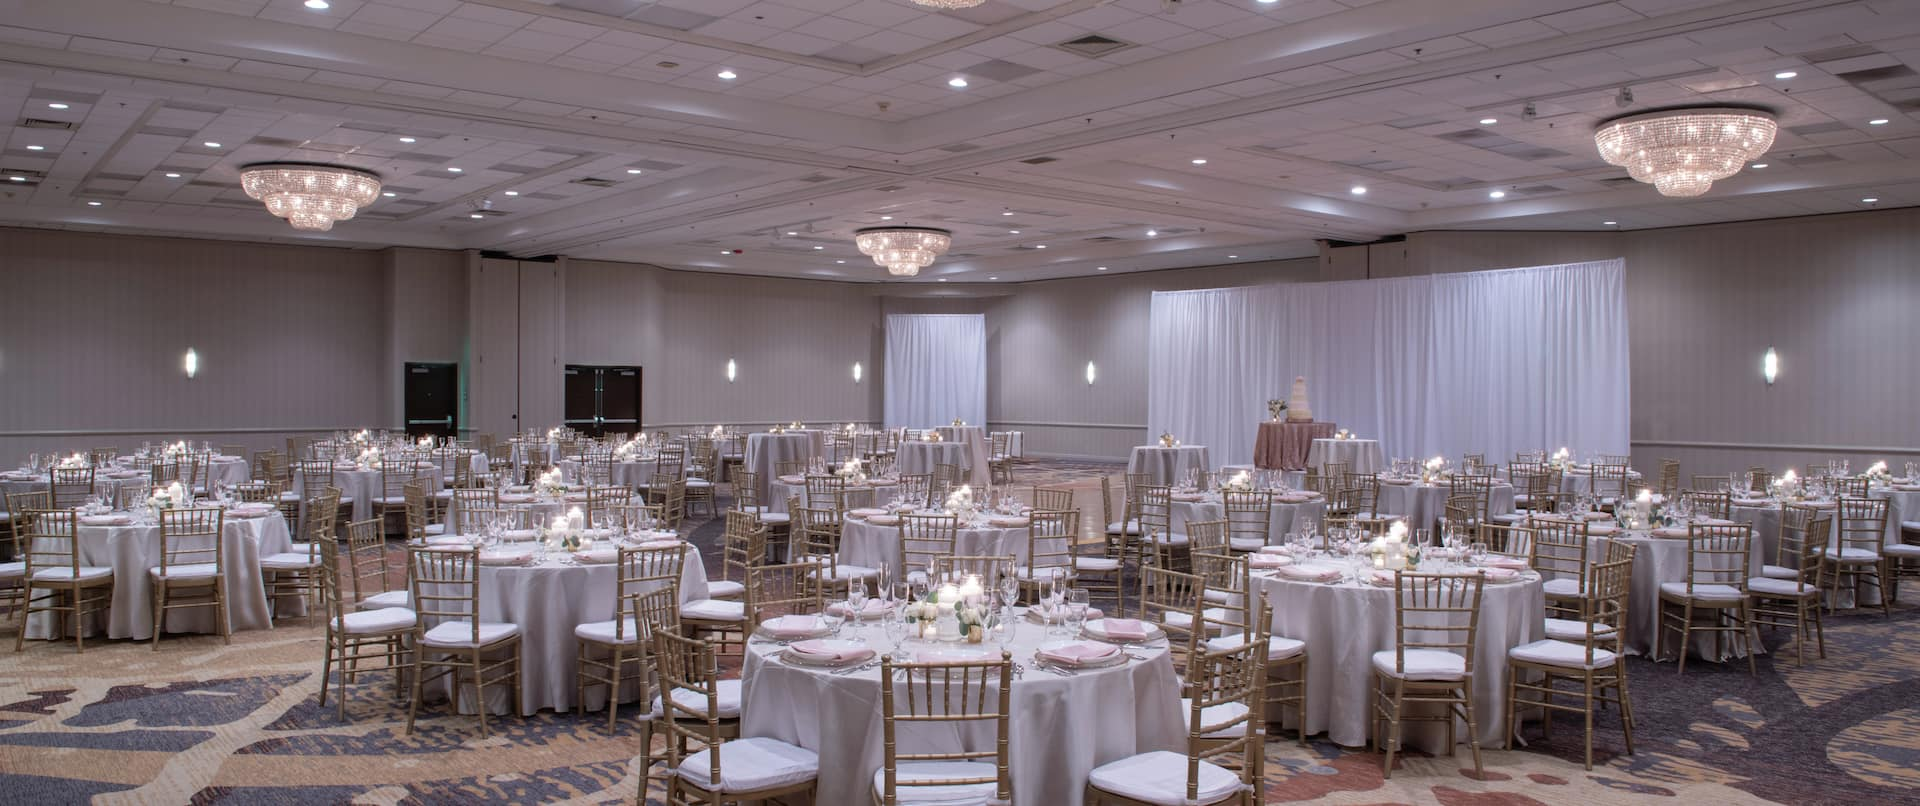 Columbia River Ballroom with Round Banquet Tables for Wedding